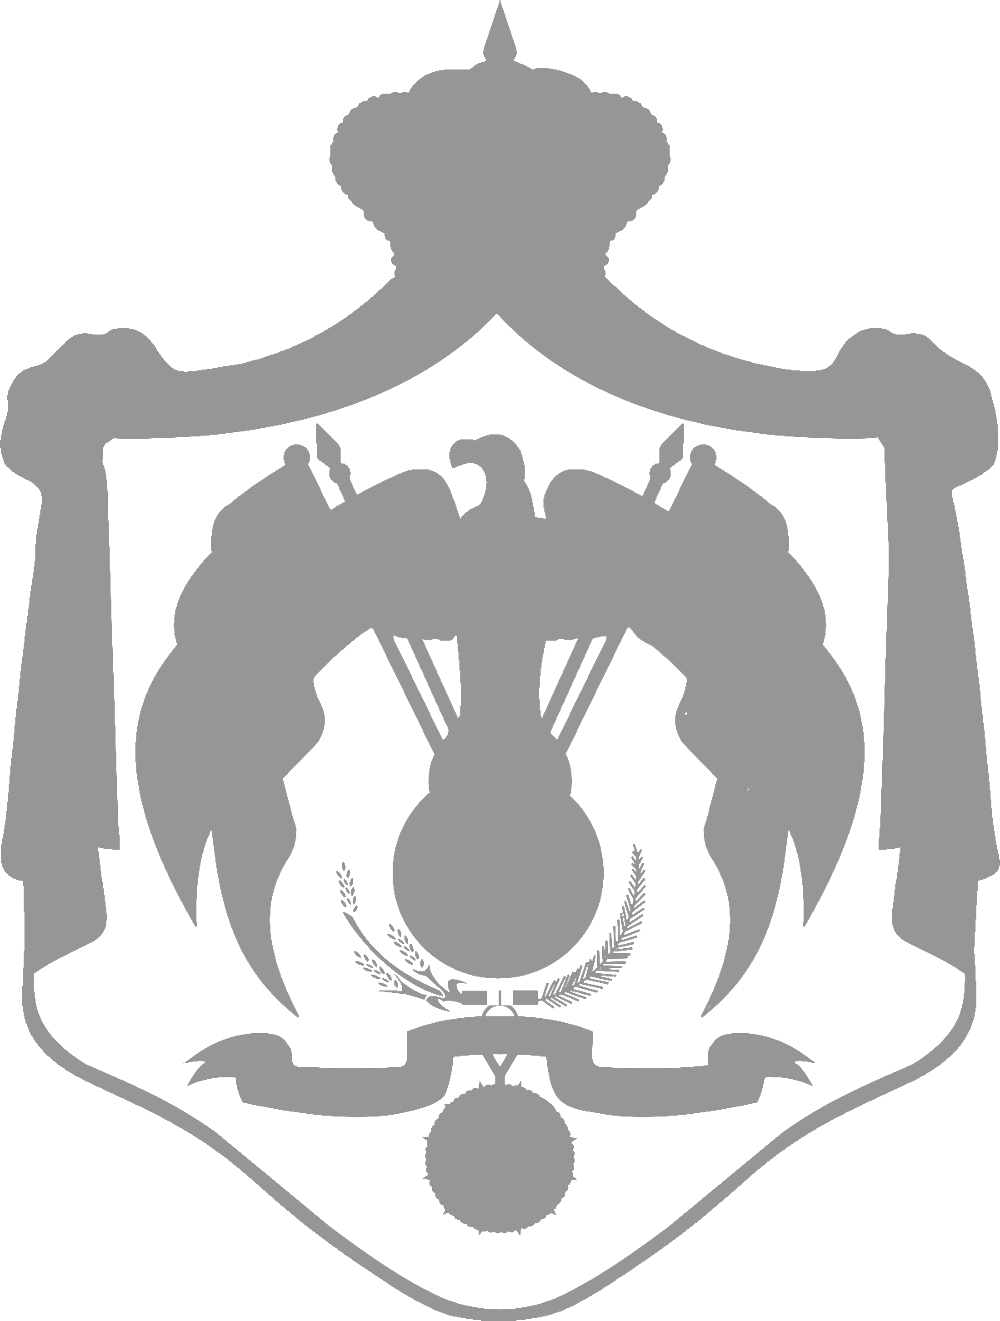 1200px-Coat_of_arms_of_Jordan grey.png